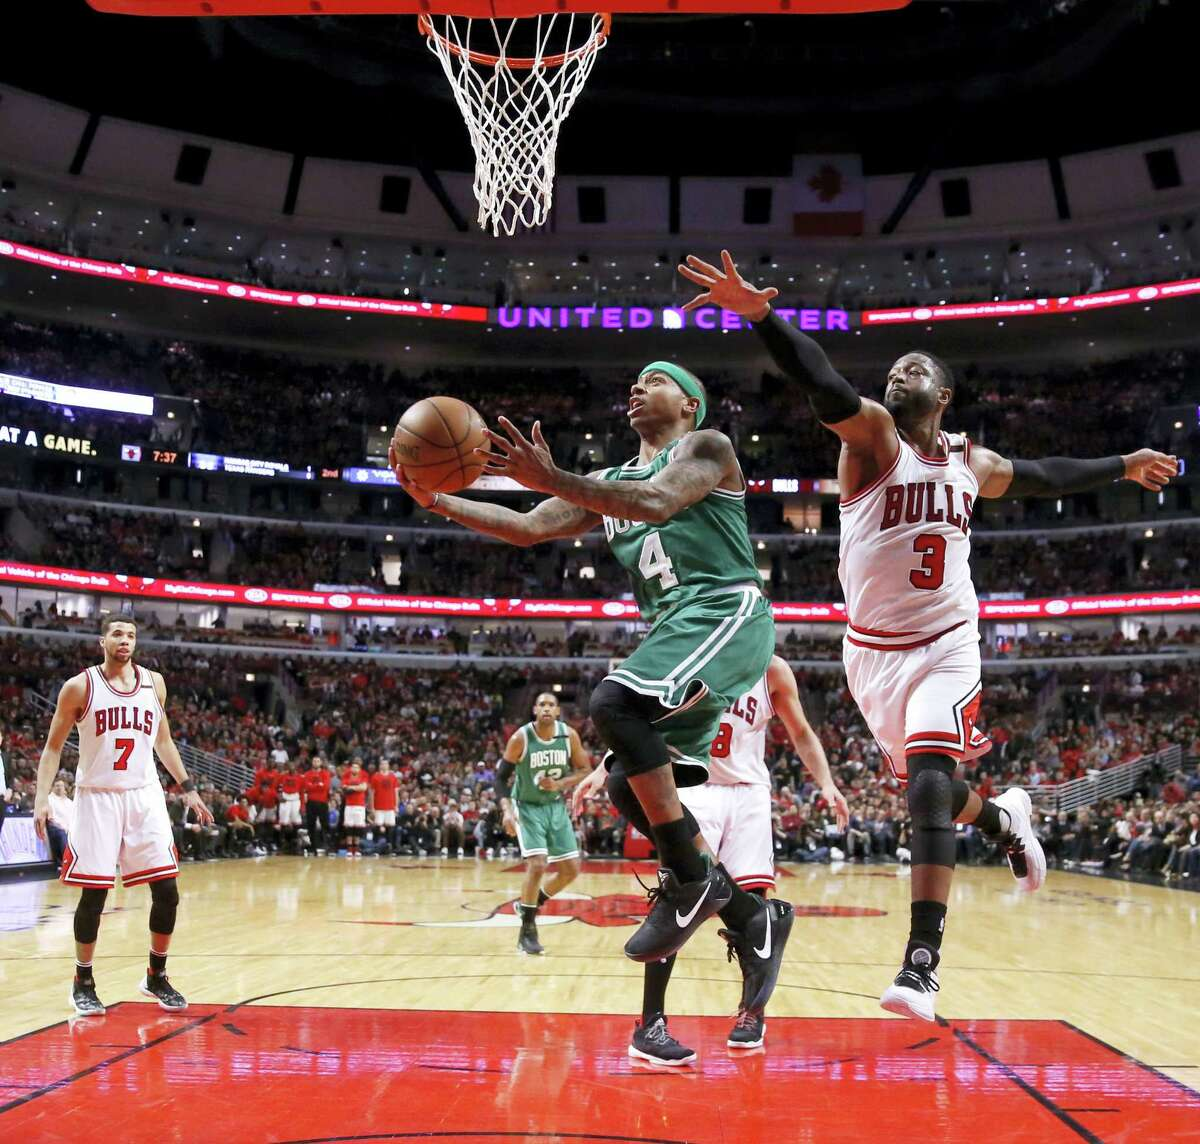 The Celtics' Isaiah Thomas, left, drives past the Bulls' Dwyane Wade in the second half Friday in Chicago.